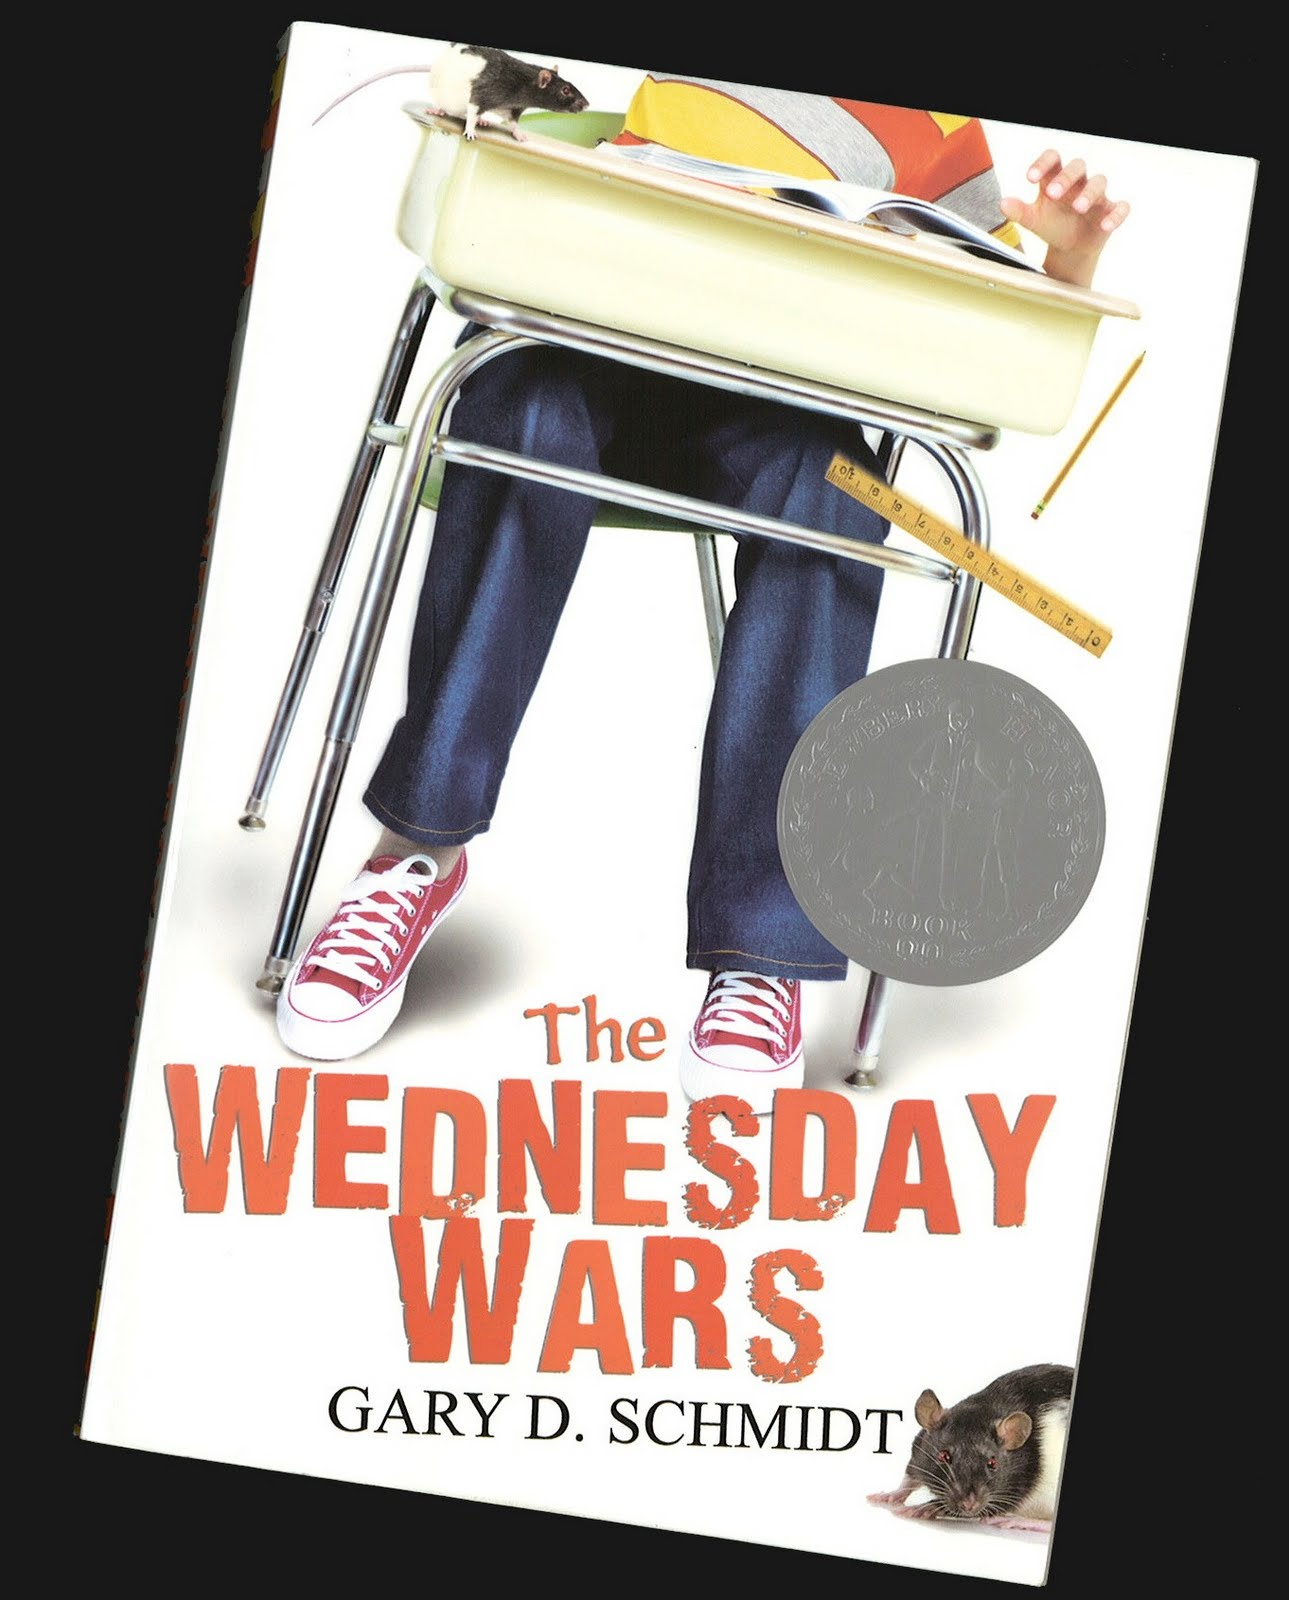 the wednesday wars The wednesday wars gary d schmidt, 2007 houghton mifflin harcourt 272 pp isbn-13: 9780547237602 summary winner, 2008 newbery honor holling hoodhood is really in for it.